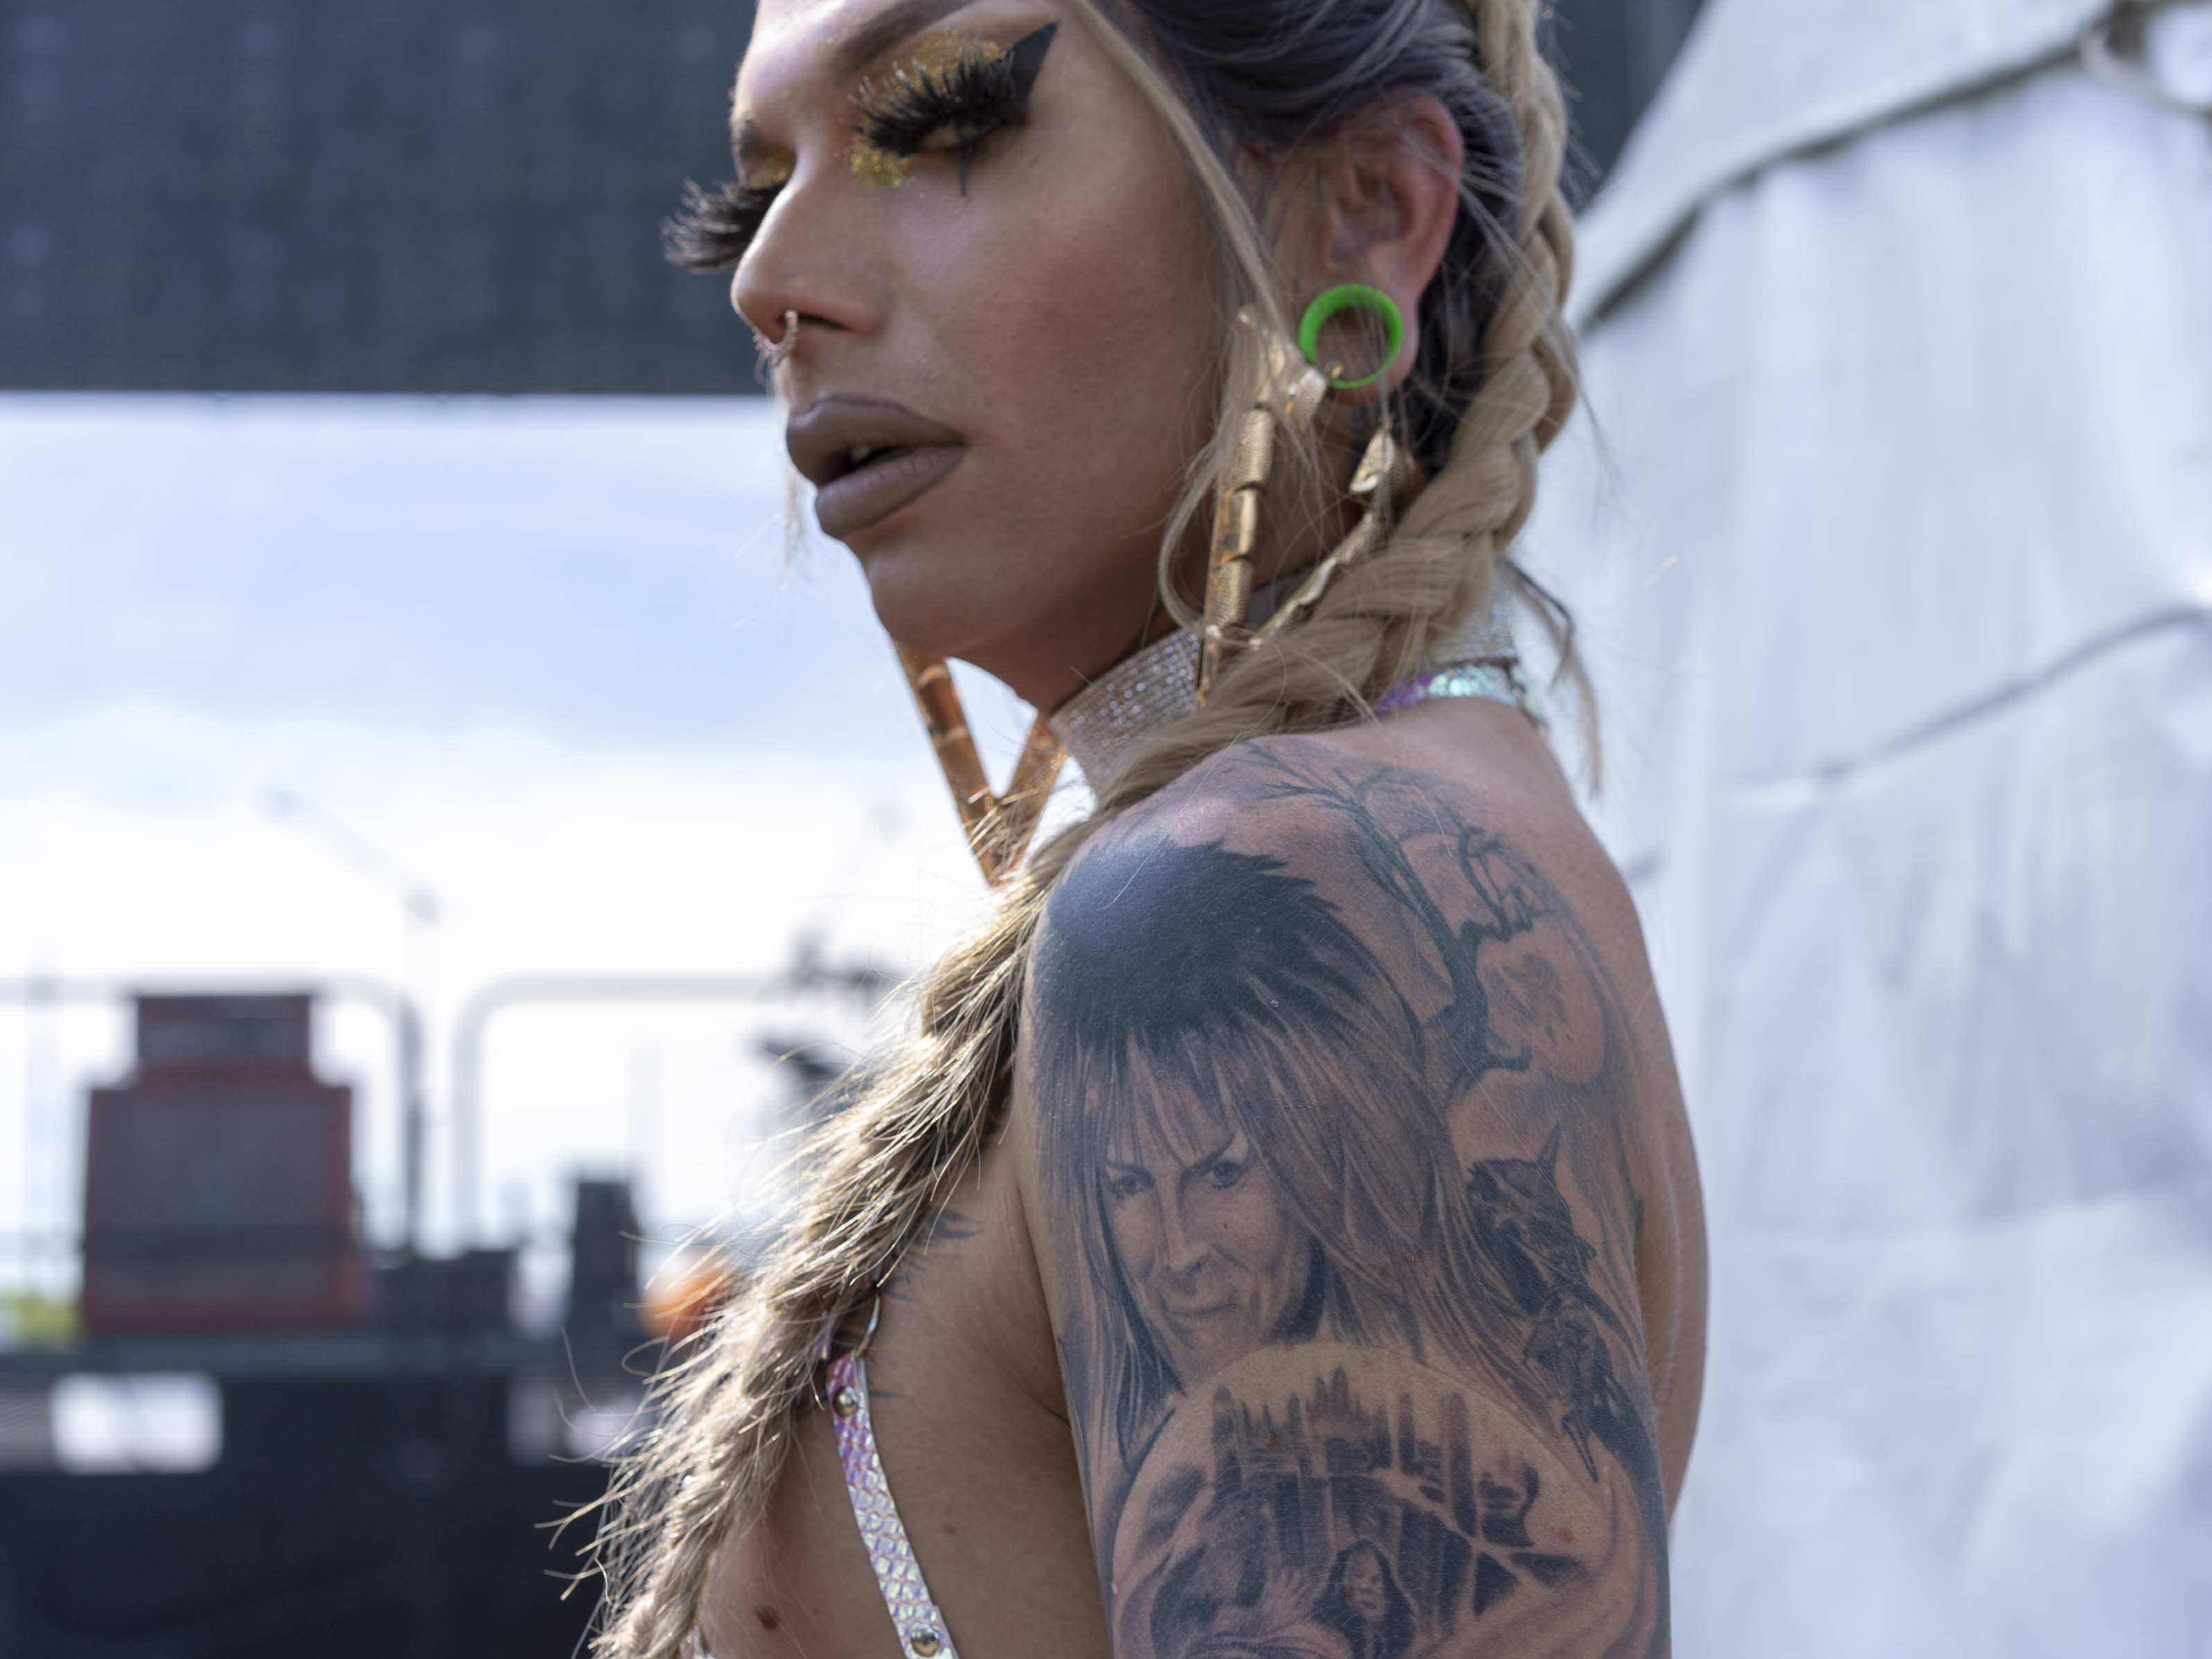 Portrait of Doja Stevens (stage name) Shane Wilson at Phoenix Pride at Steele Indian School Park on Saturday, April 6, 2019.